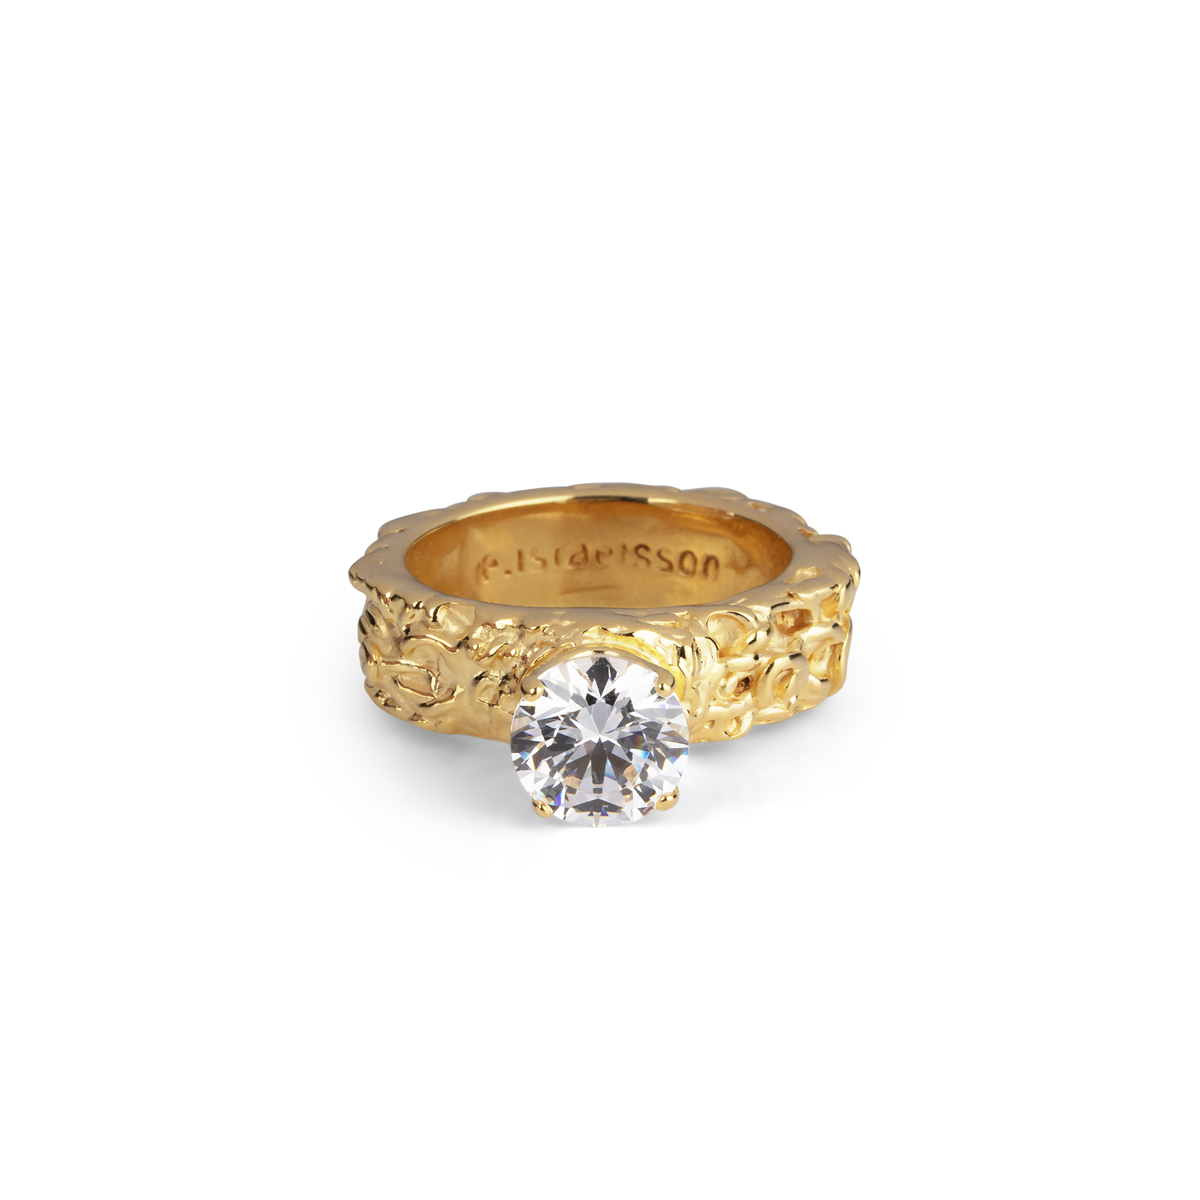 PRINCESS GOLD RING in the group RINGS at EMMA ISRAELSSON (ring004)